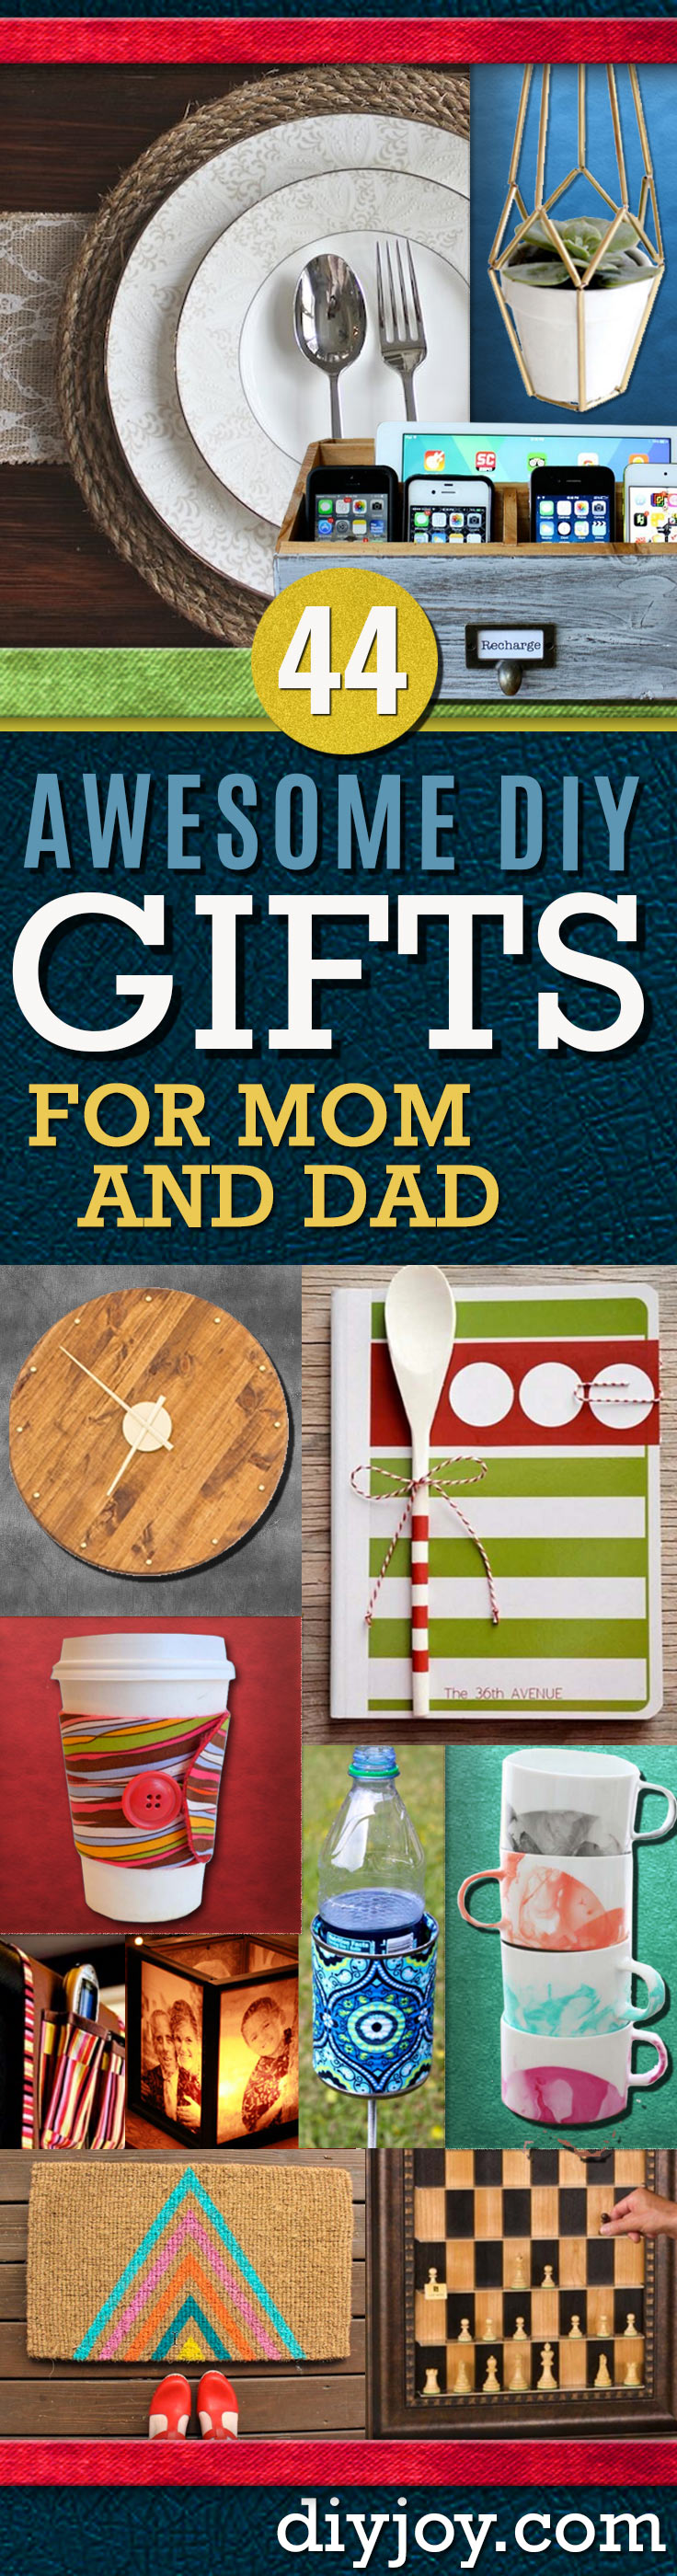 diy gifts for mom and dad homemade christmas gift ideas for your parents cool - Best Christmas Presents For Dad